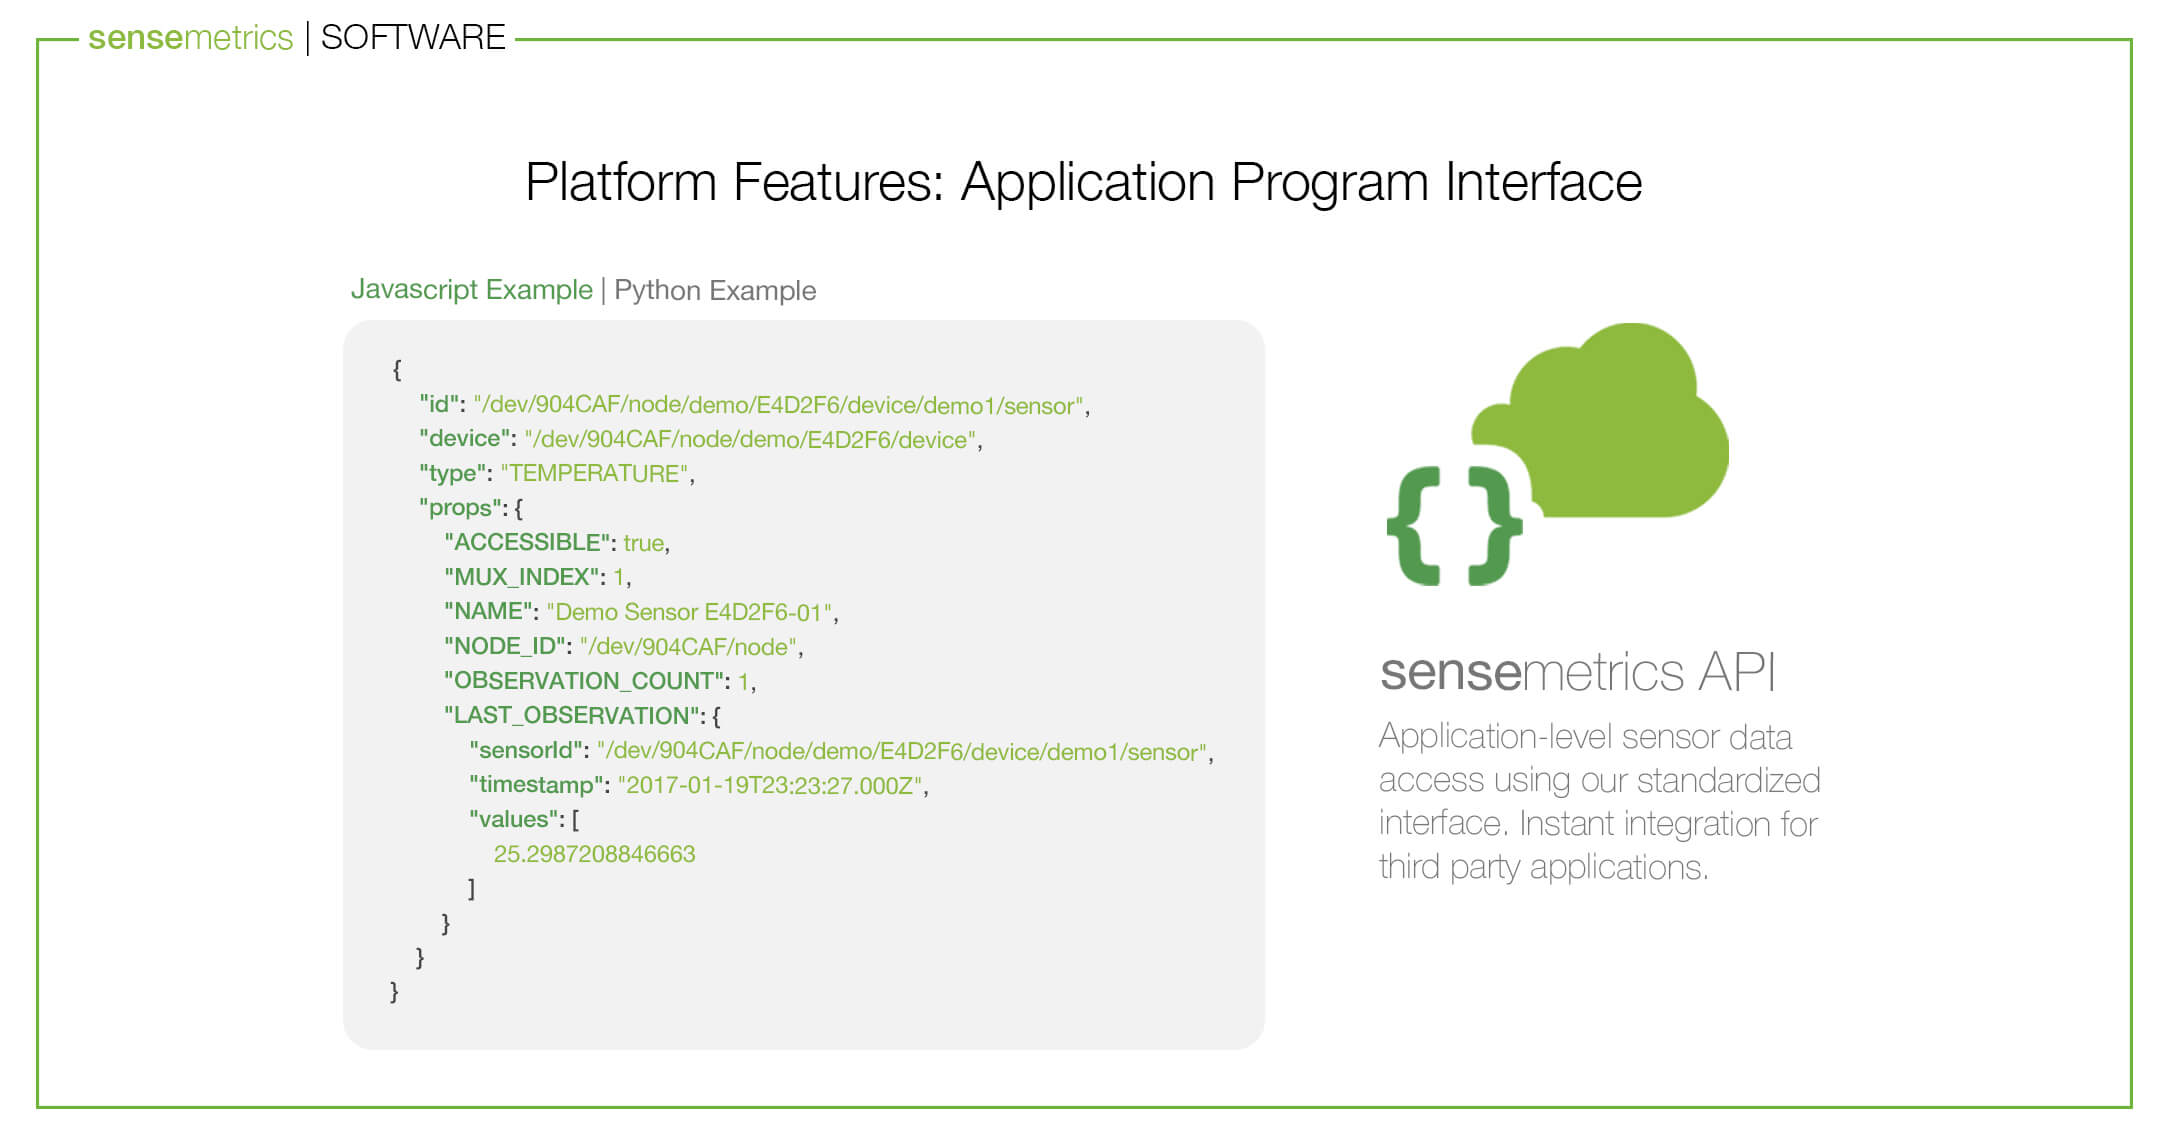 Platform Features: Application Program Interface